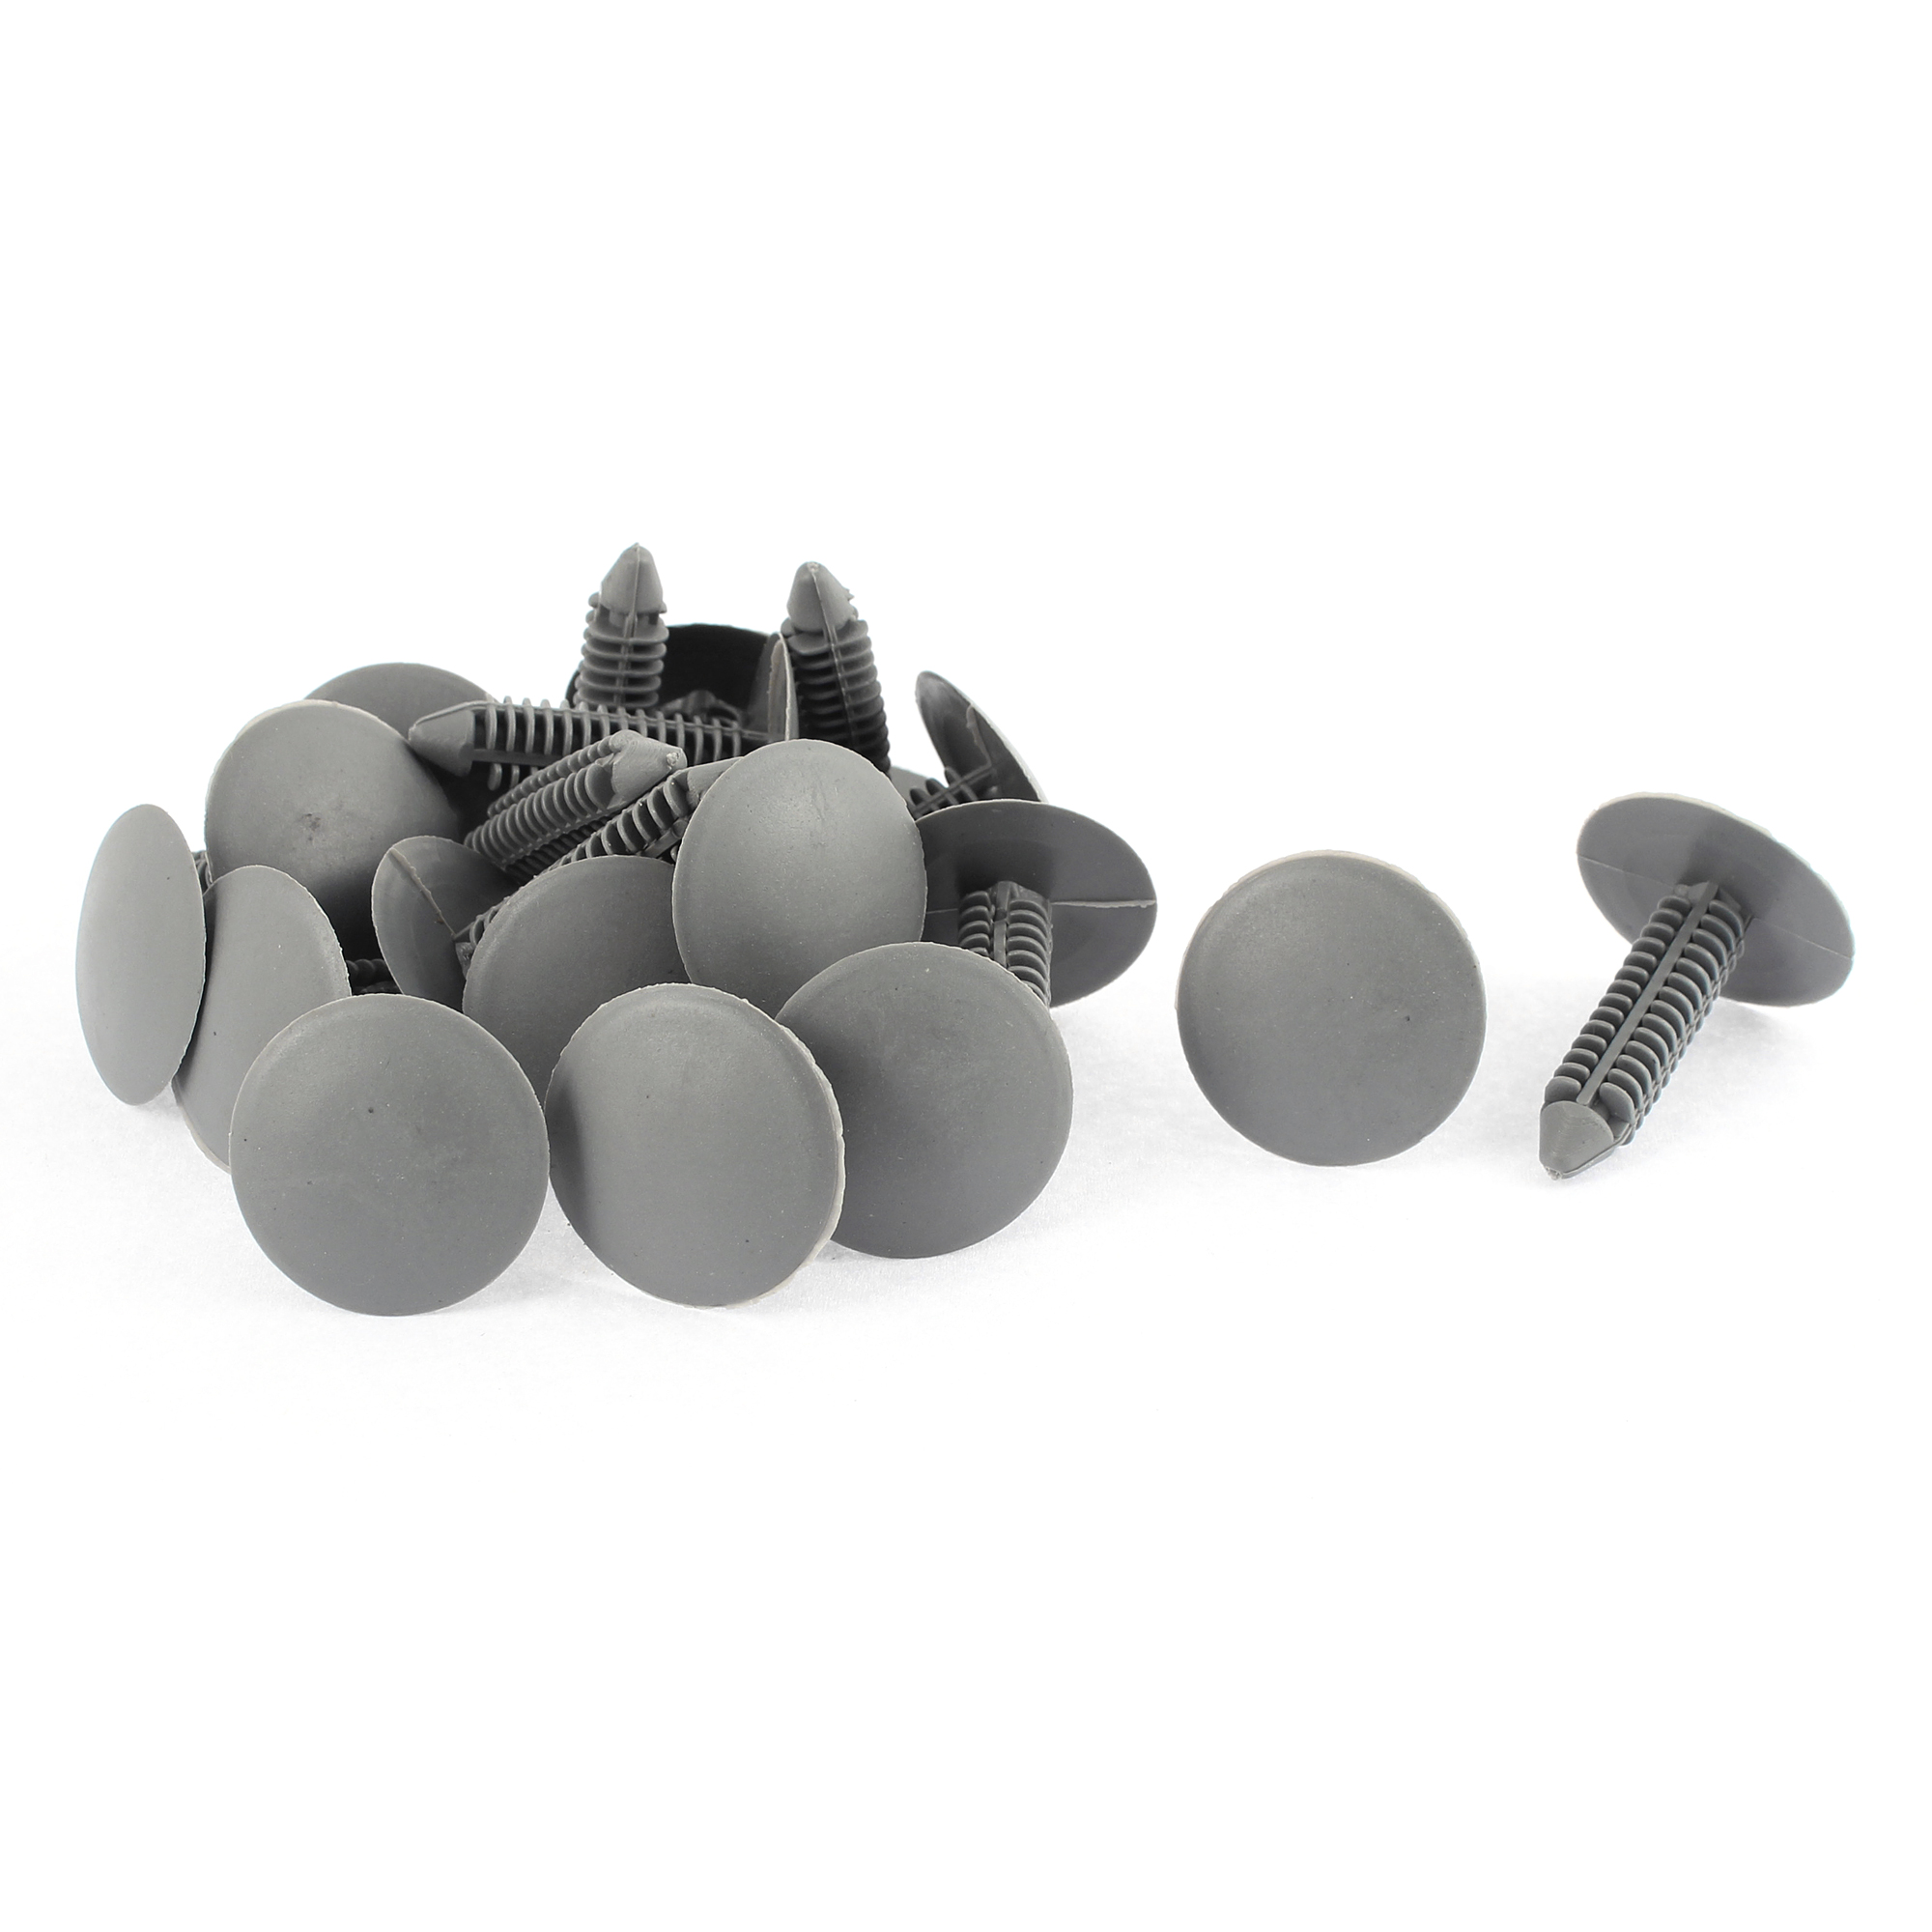 20 Pcs Gray Plastic Rivet Buckle Ceiling Lining Trim Panel Retainer Fastener Clips